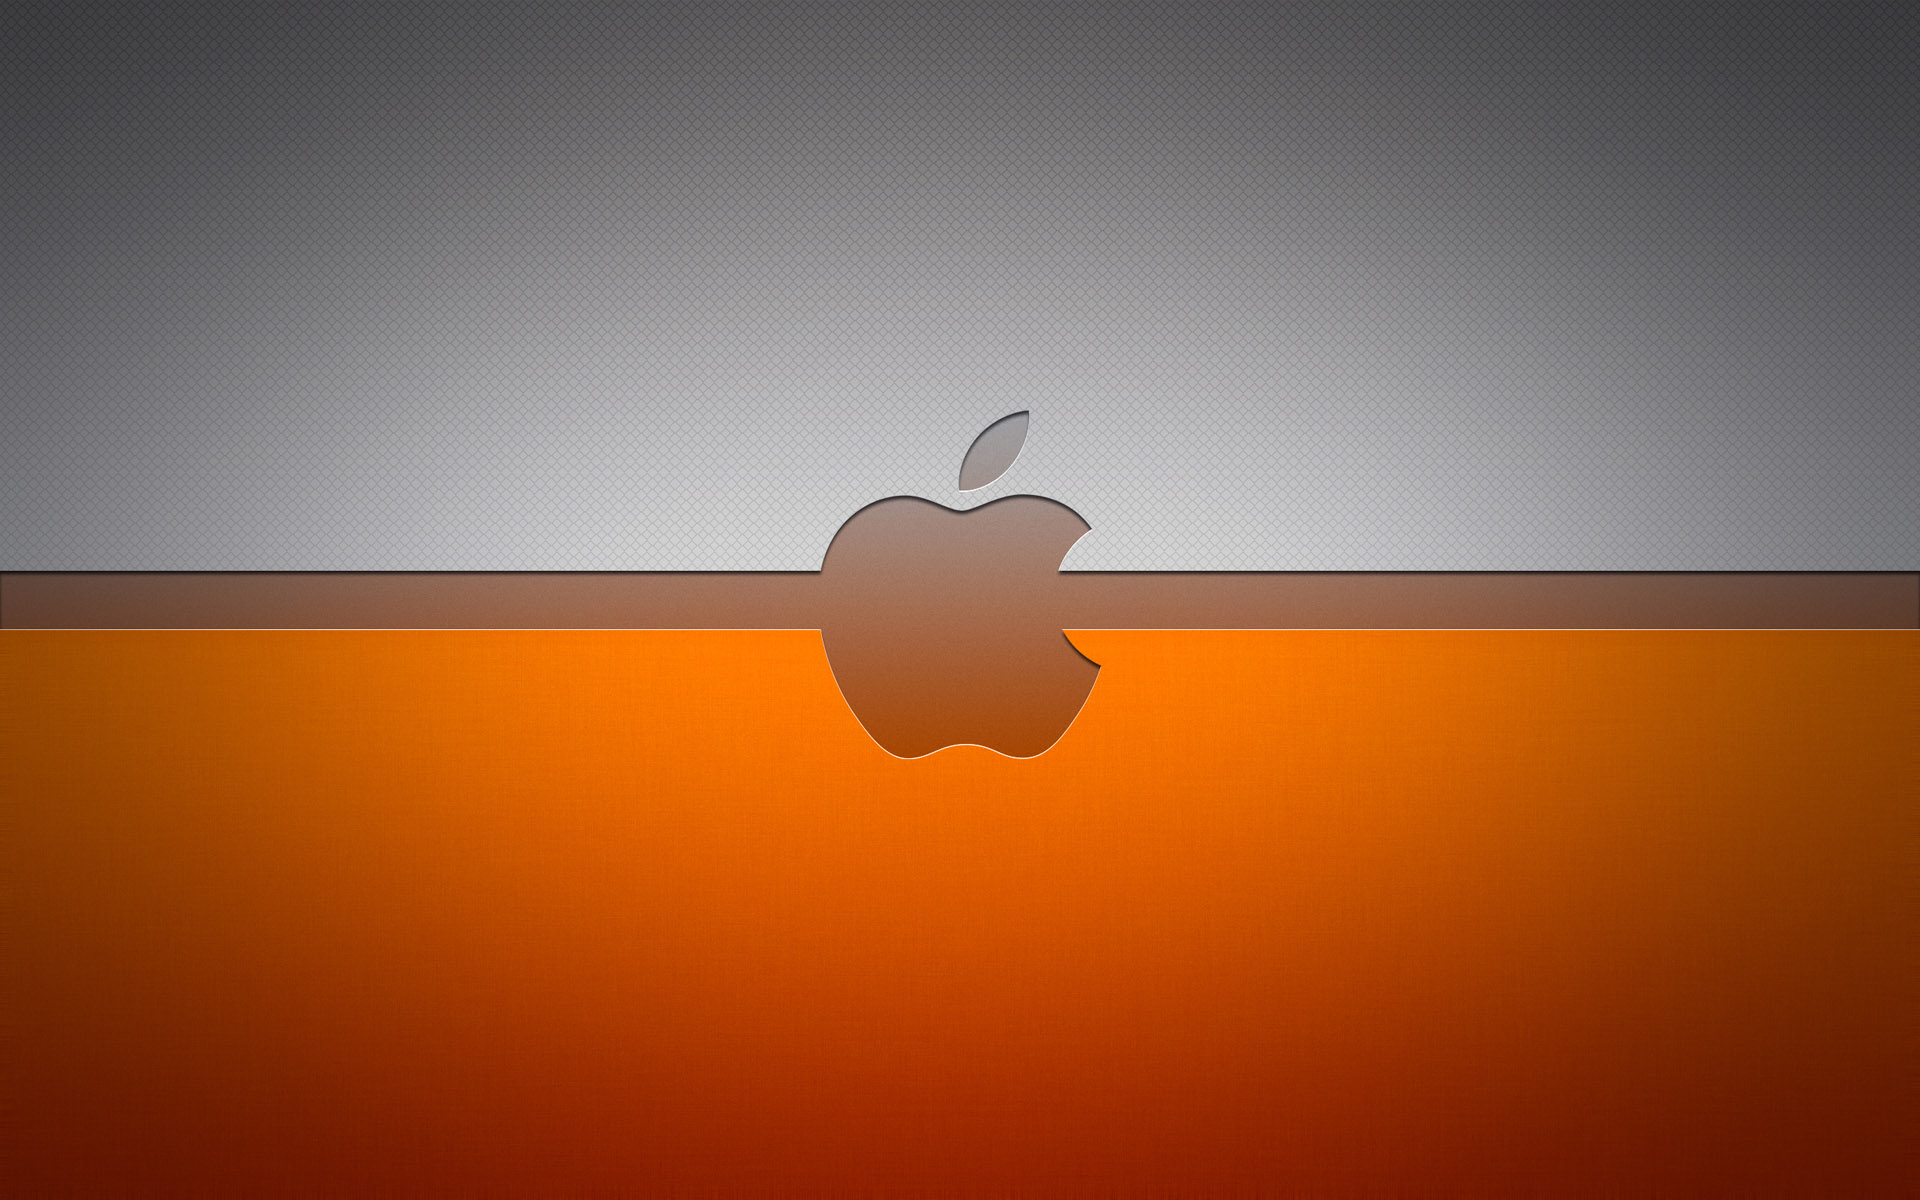 HD Apple wallpaper 18140